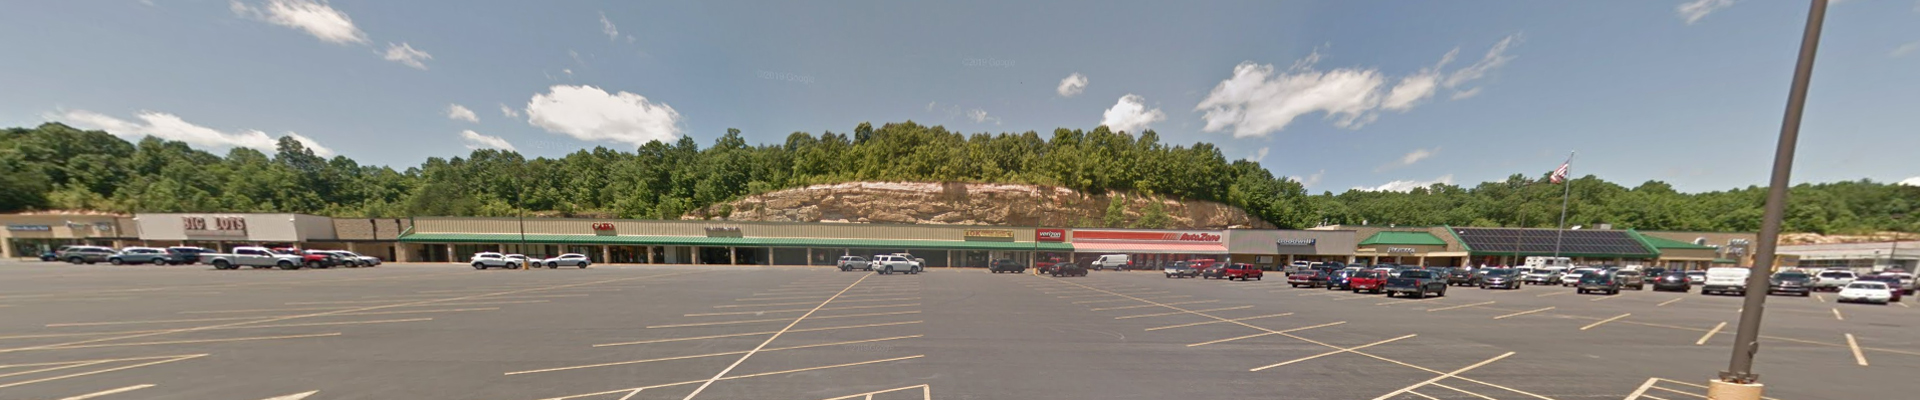 Fayette Square Shopping Center – Oak Hill, West Virginia